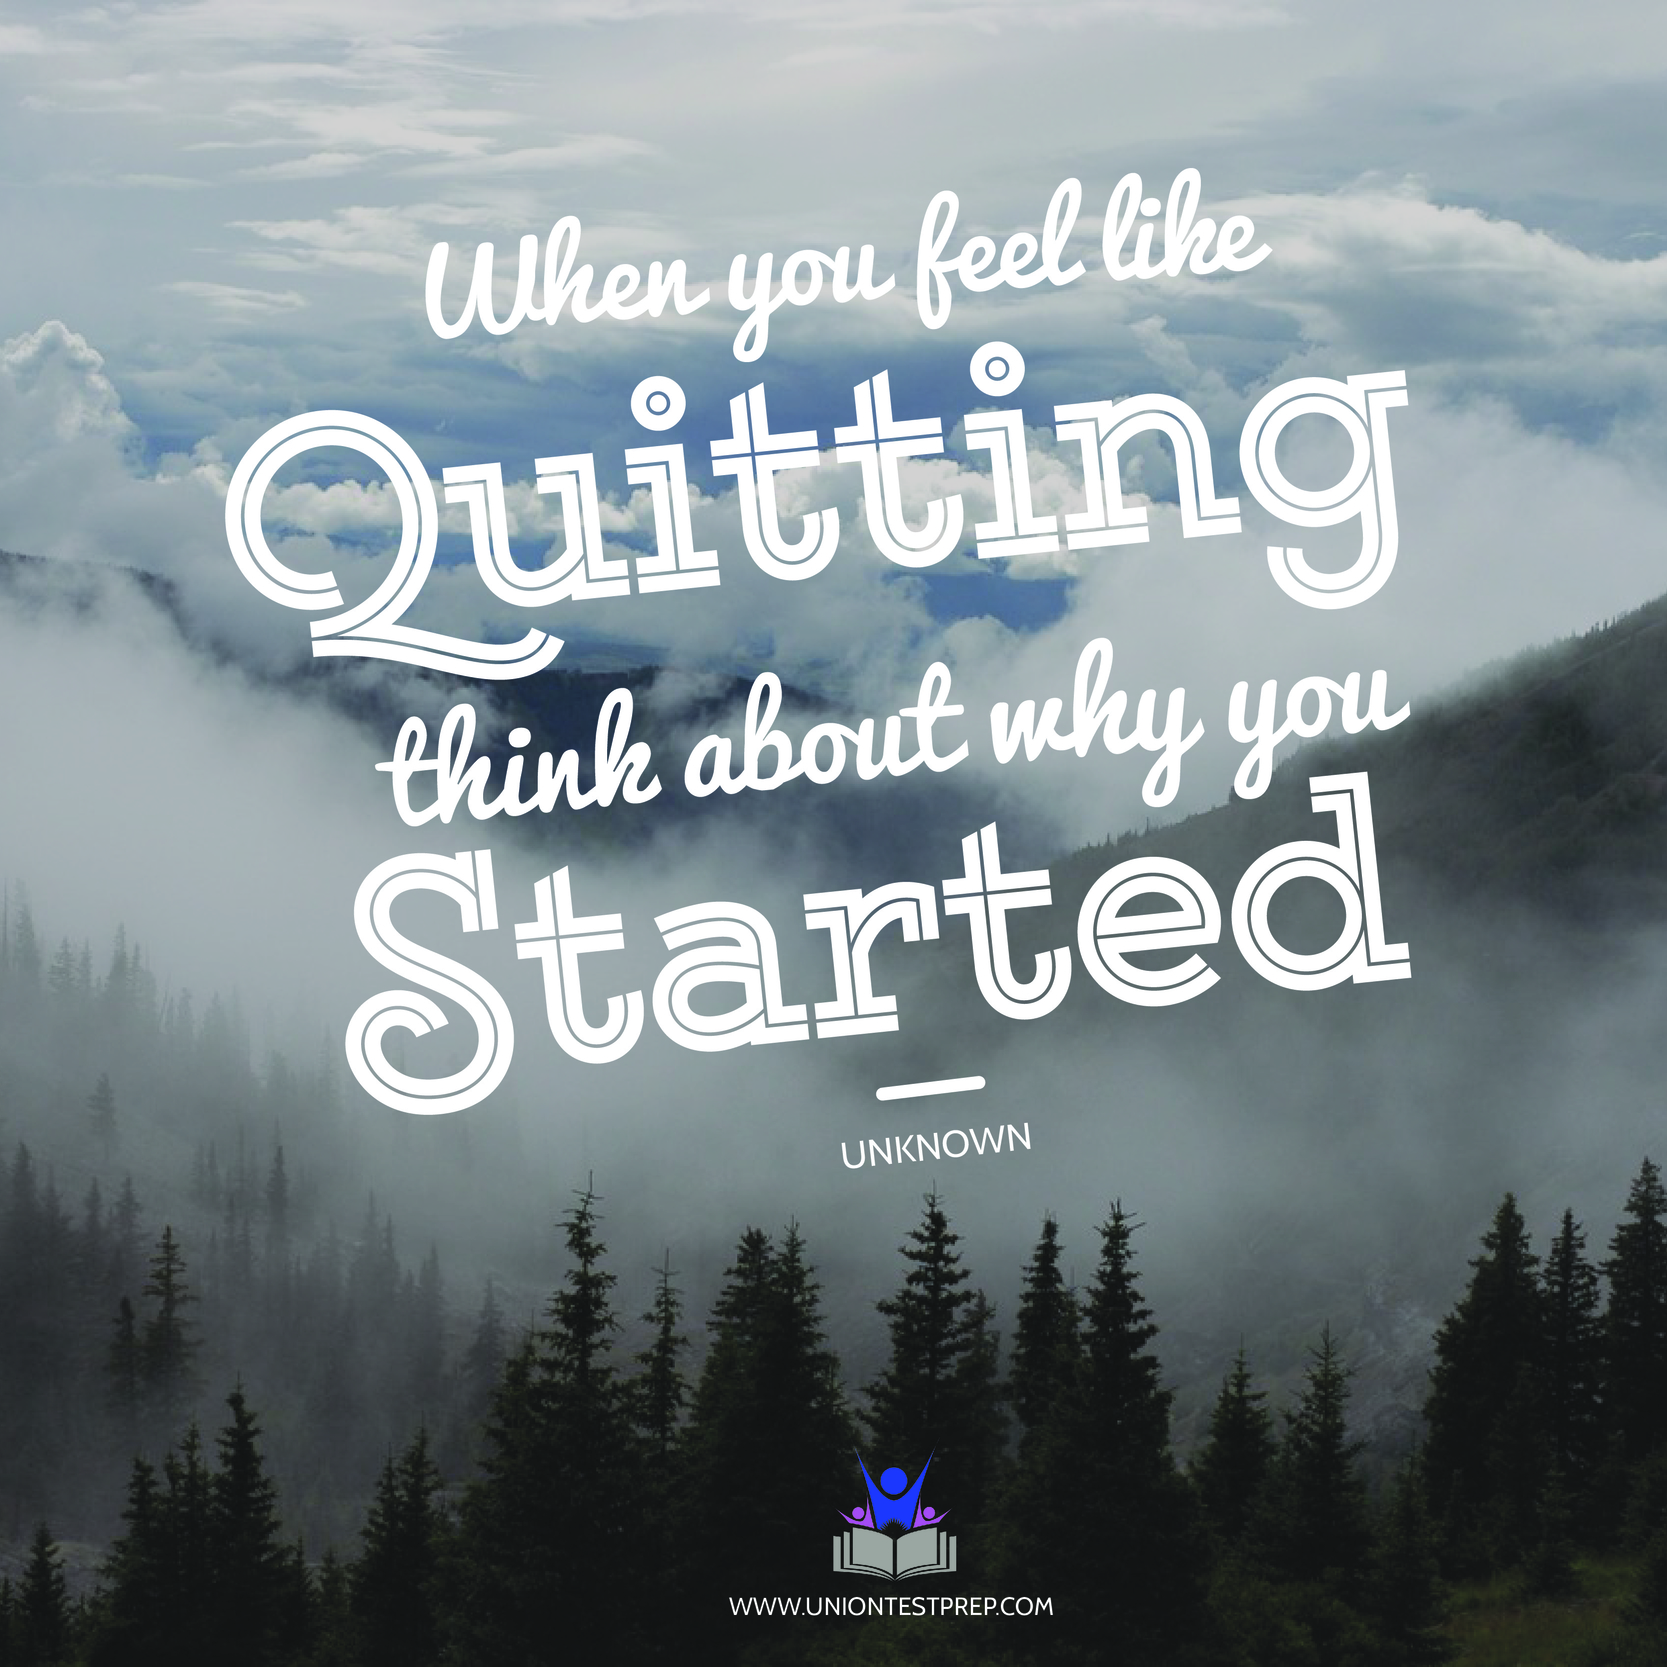 when you feel like quitting think about why you started –unknown 1